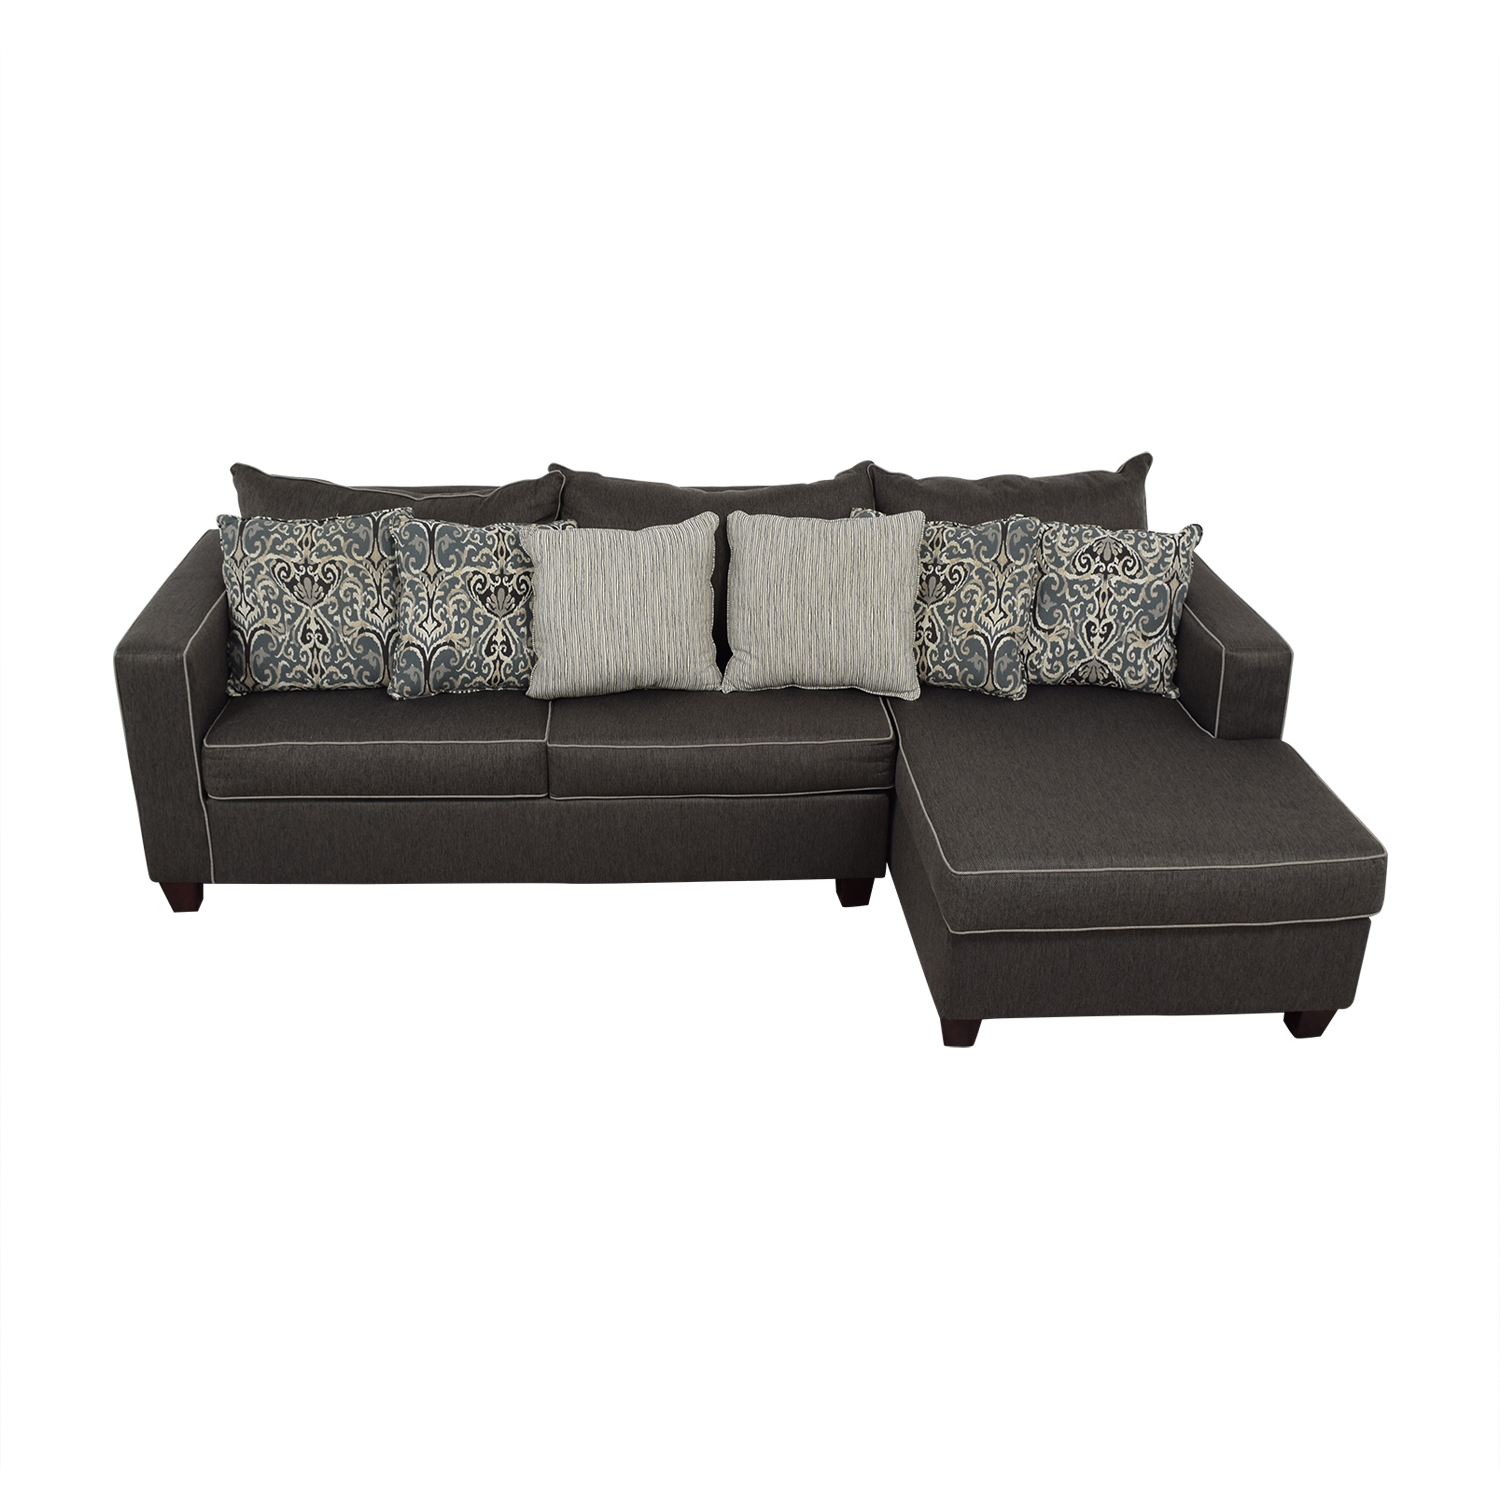 May Furniture Alex Grey Right Facing Sectional sale